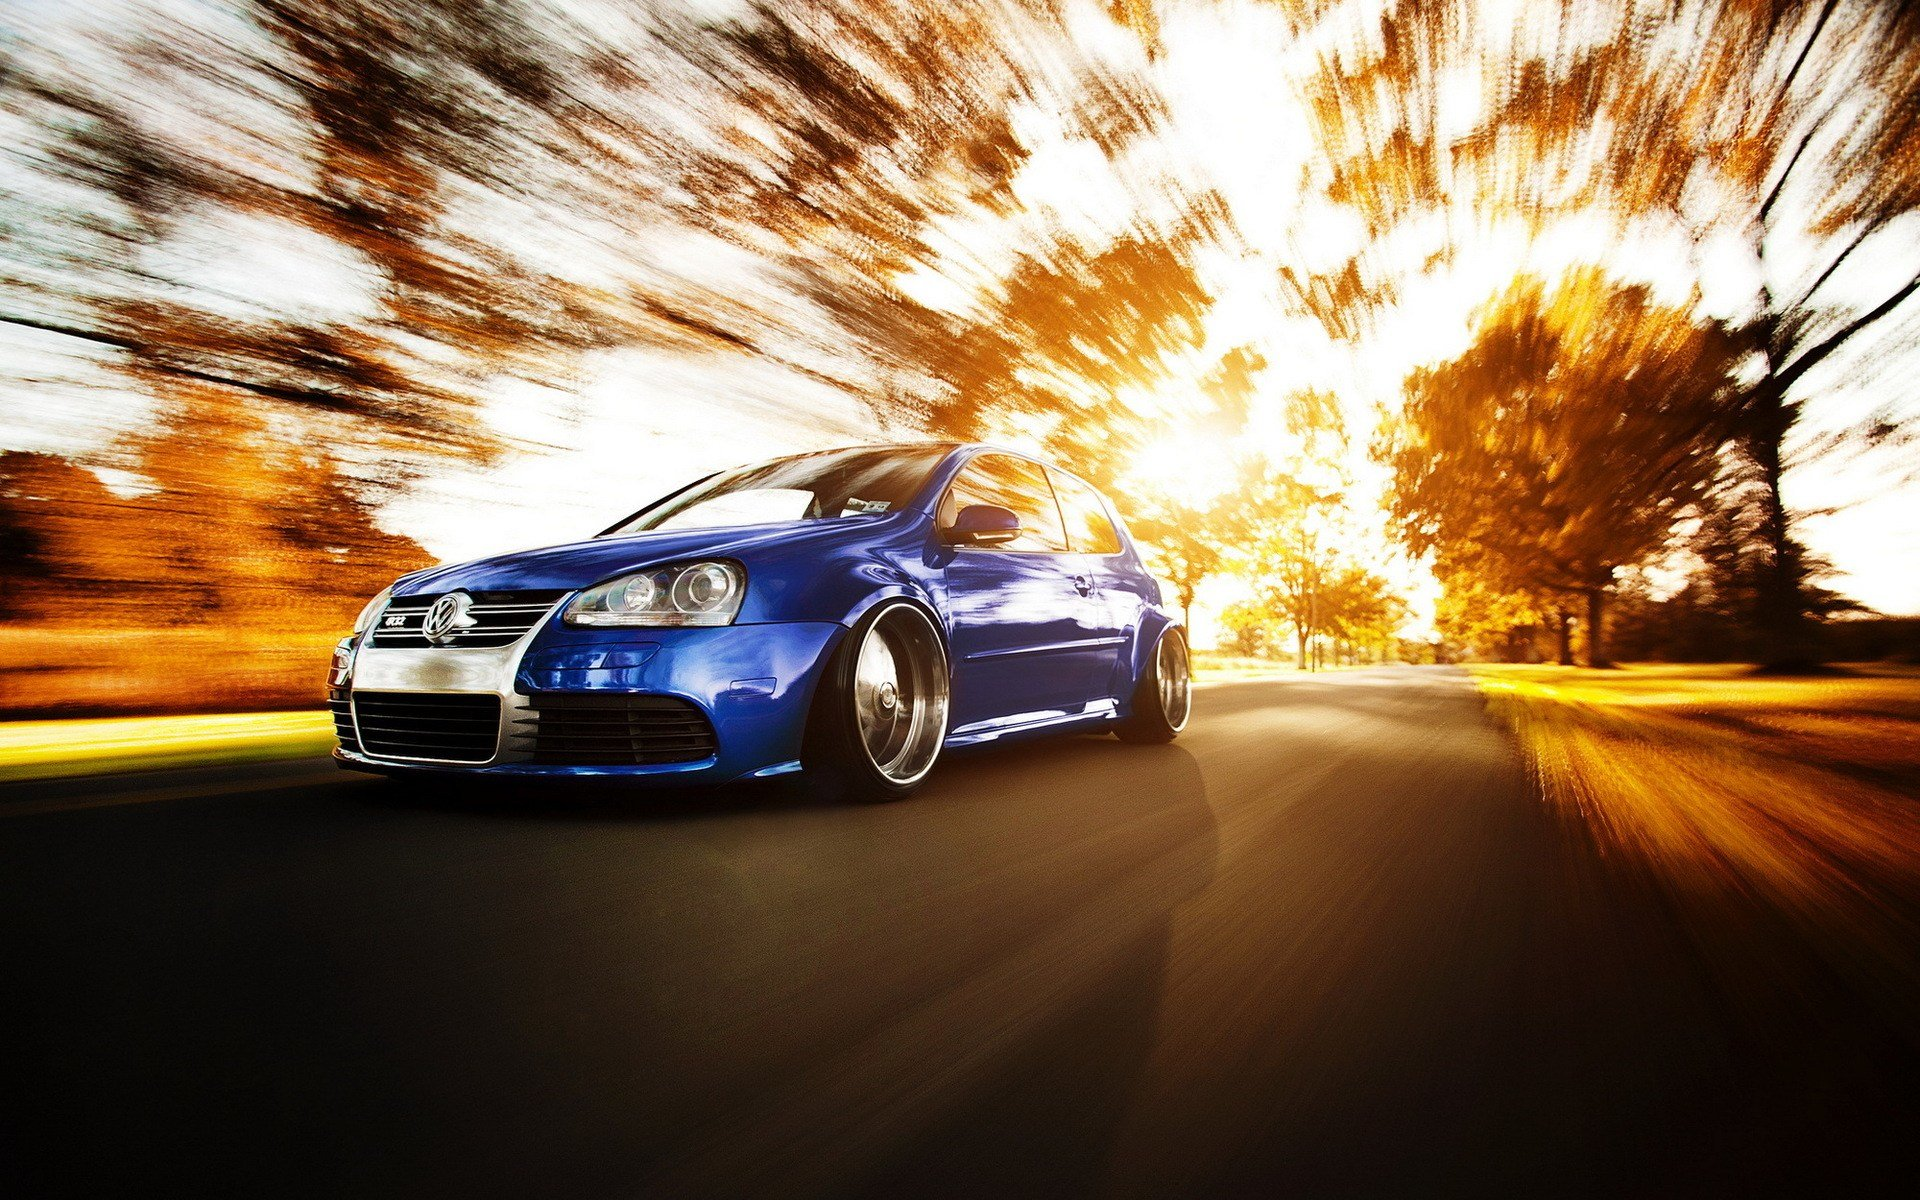 Latest 1 Volkswagen R32 Hd Wallpapers Background Images Free Download